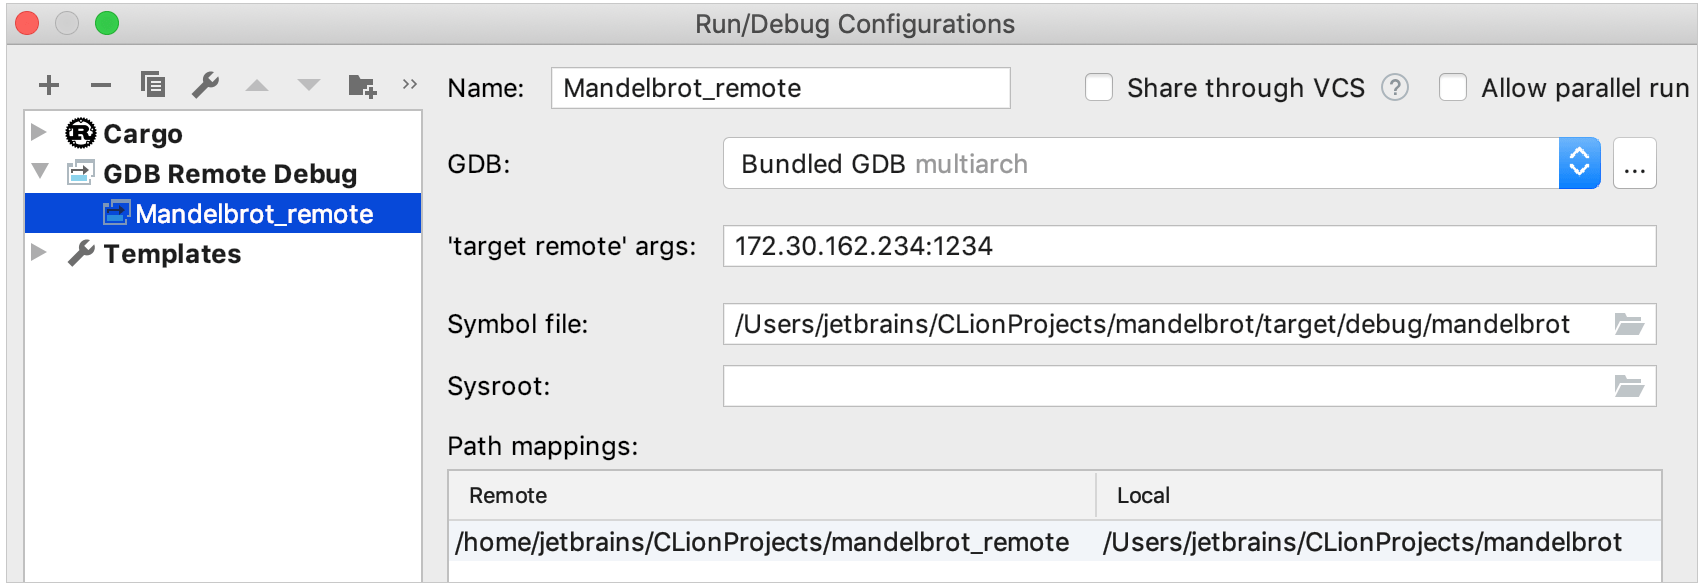 GDB remote debug configuration for a Rust project